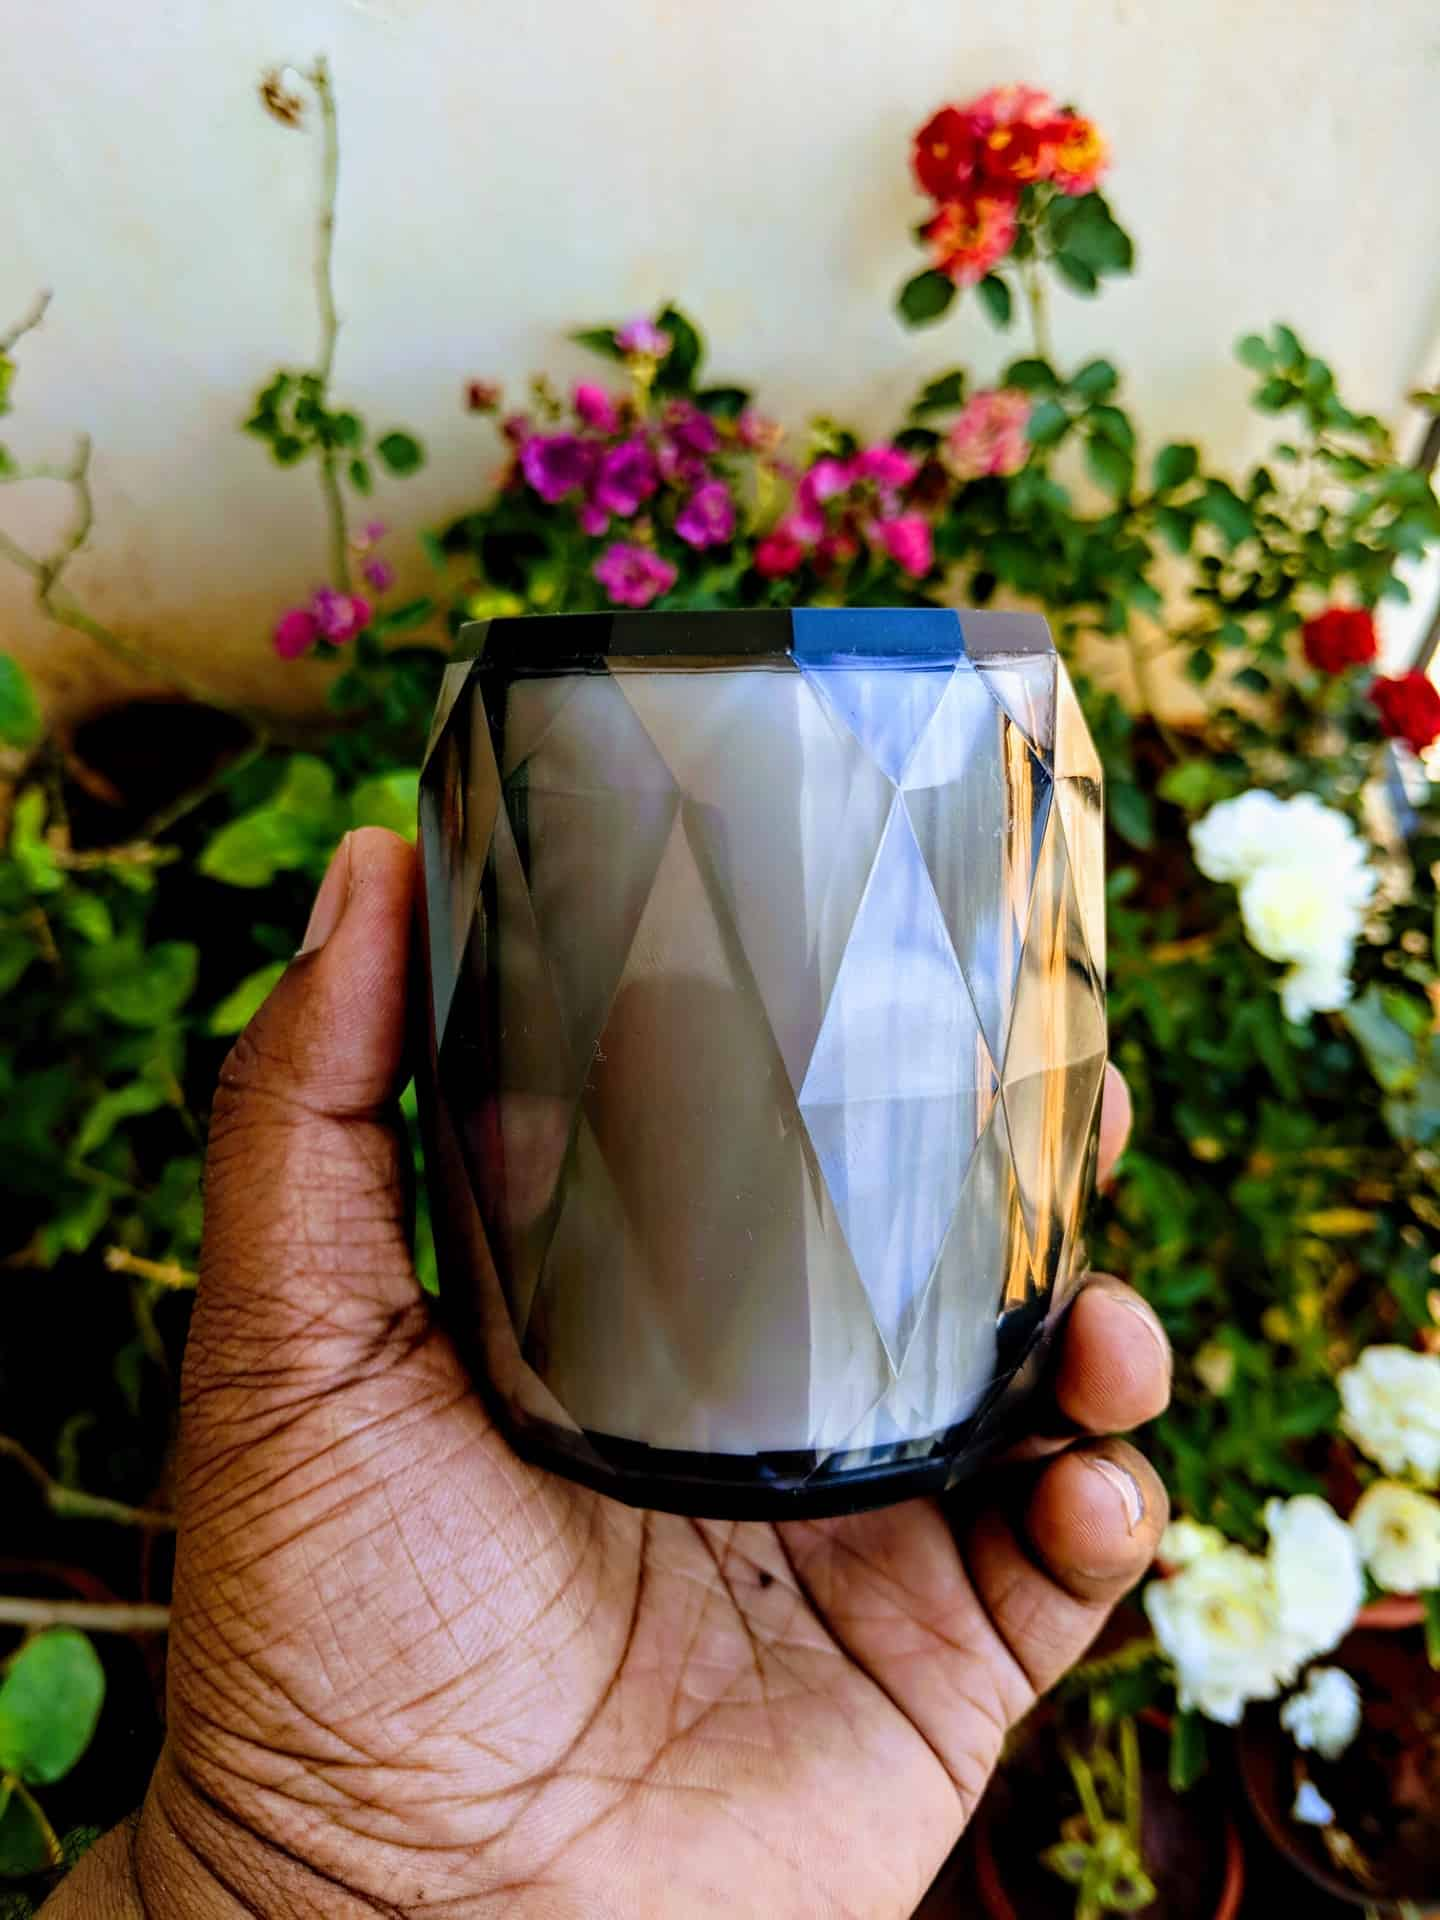 F&D W8 Portable Bluetooth Speaker Review - 4